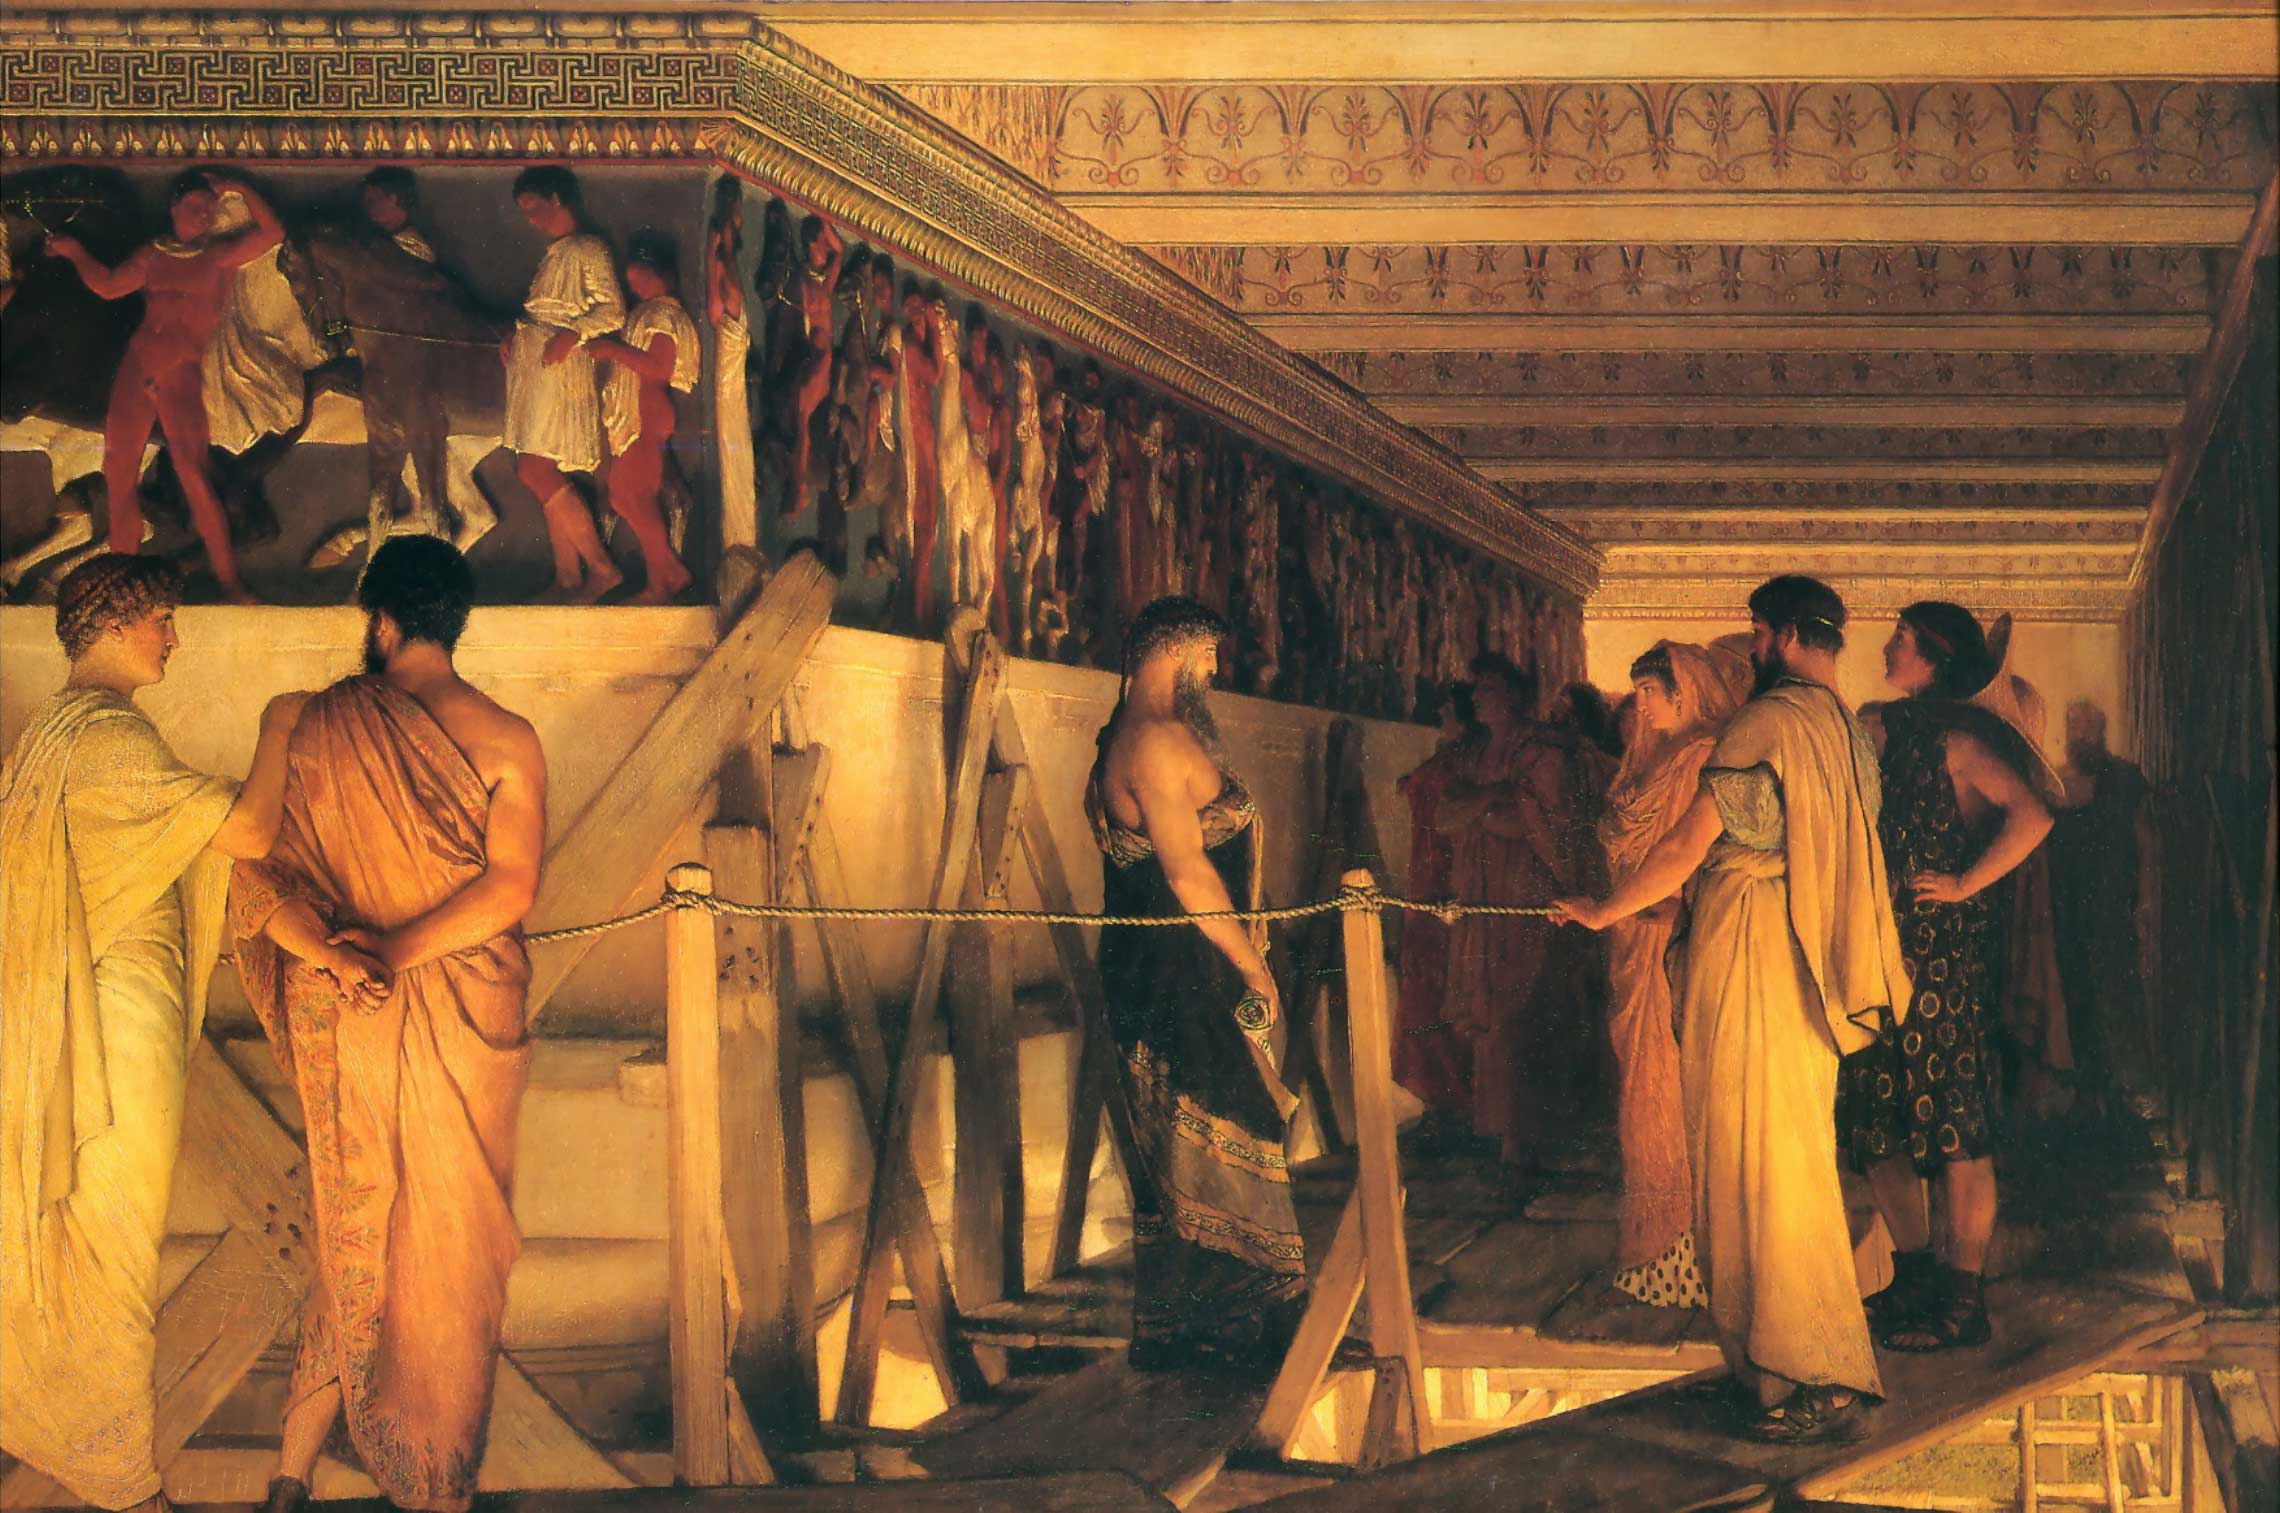 Phidias Showing the Frieze of the Parthenon to his Friends (1868) by Sir Lawrence Alma-Tadema